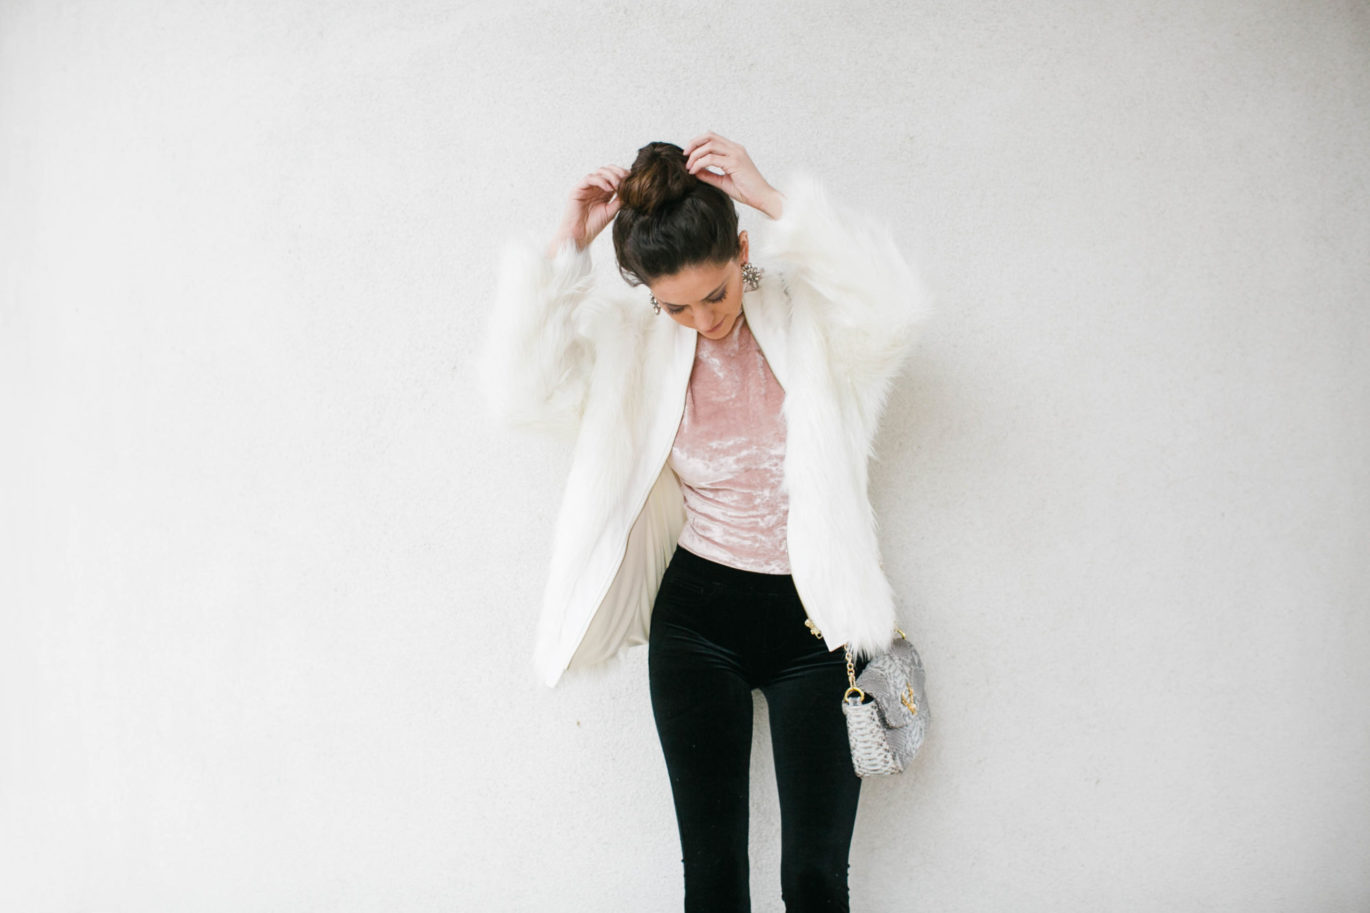 glam new year's eve, nye outfit ideas, what to wear for new year's eve, fancy nye style, nye outfit ideas, how to wear velvet, how to wear crushed velvet, how to wear a big fur coat, Blank Denim Velvet Flare Jeans, BB Dakota Hatherley Crushed Velvet Bodysuit